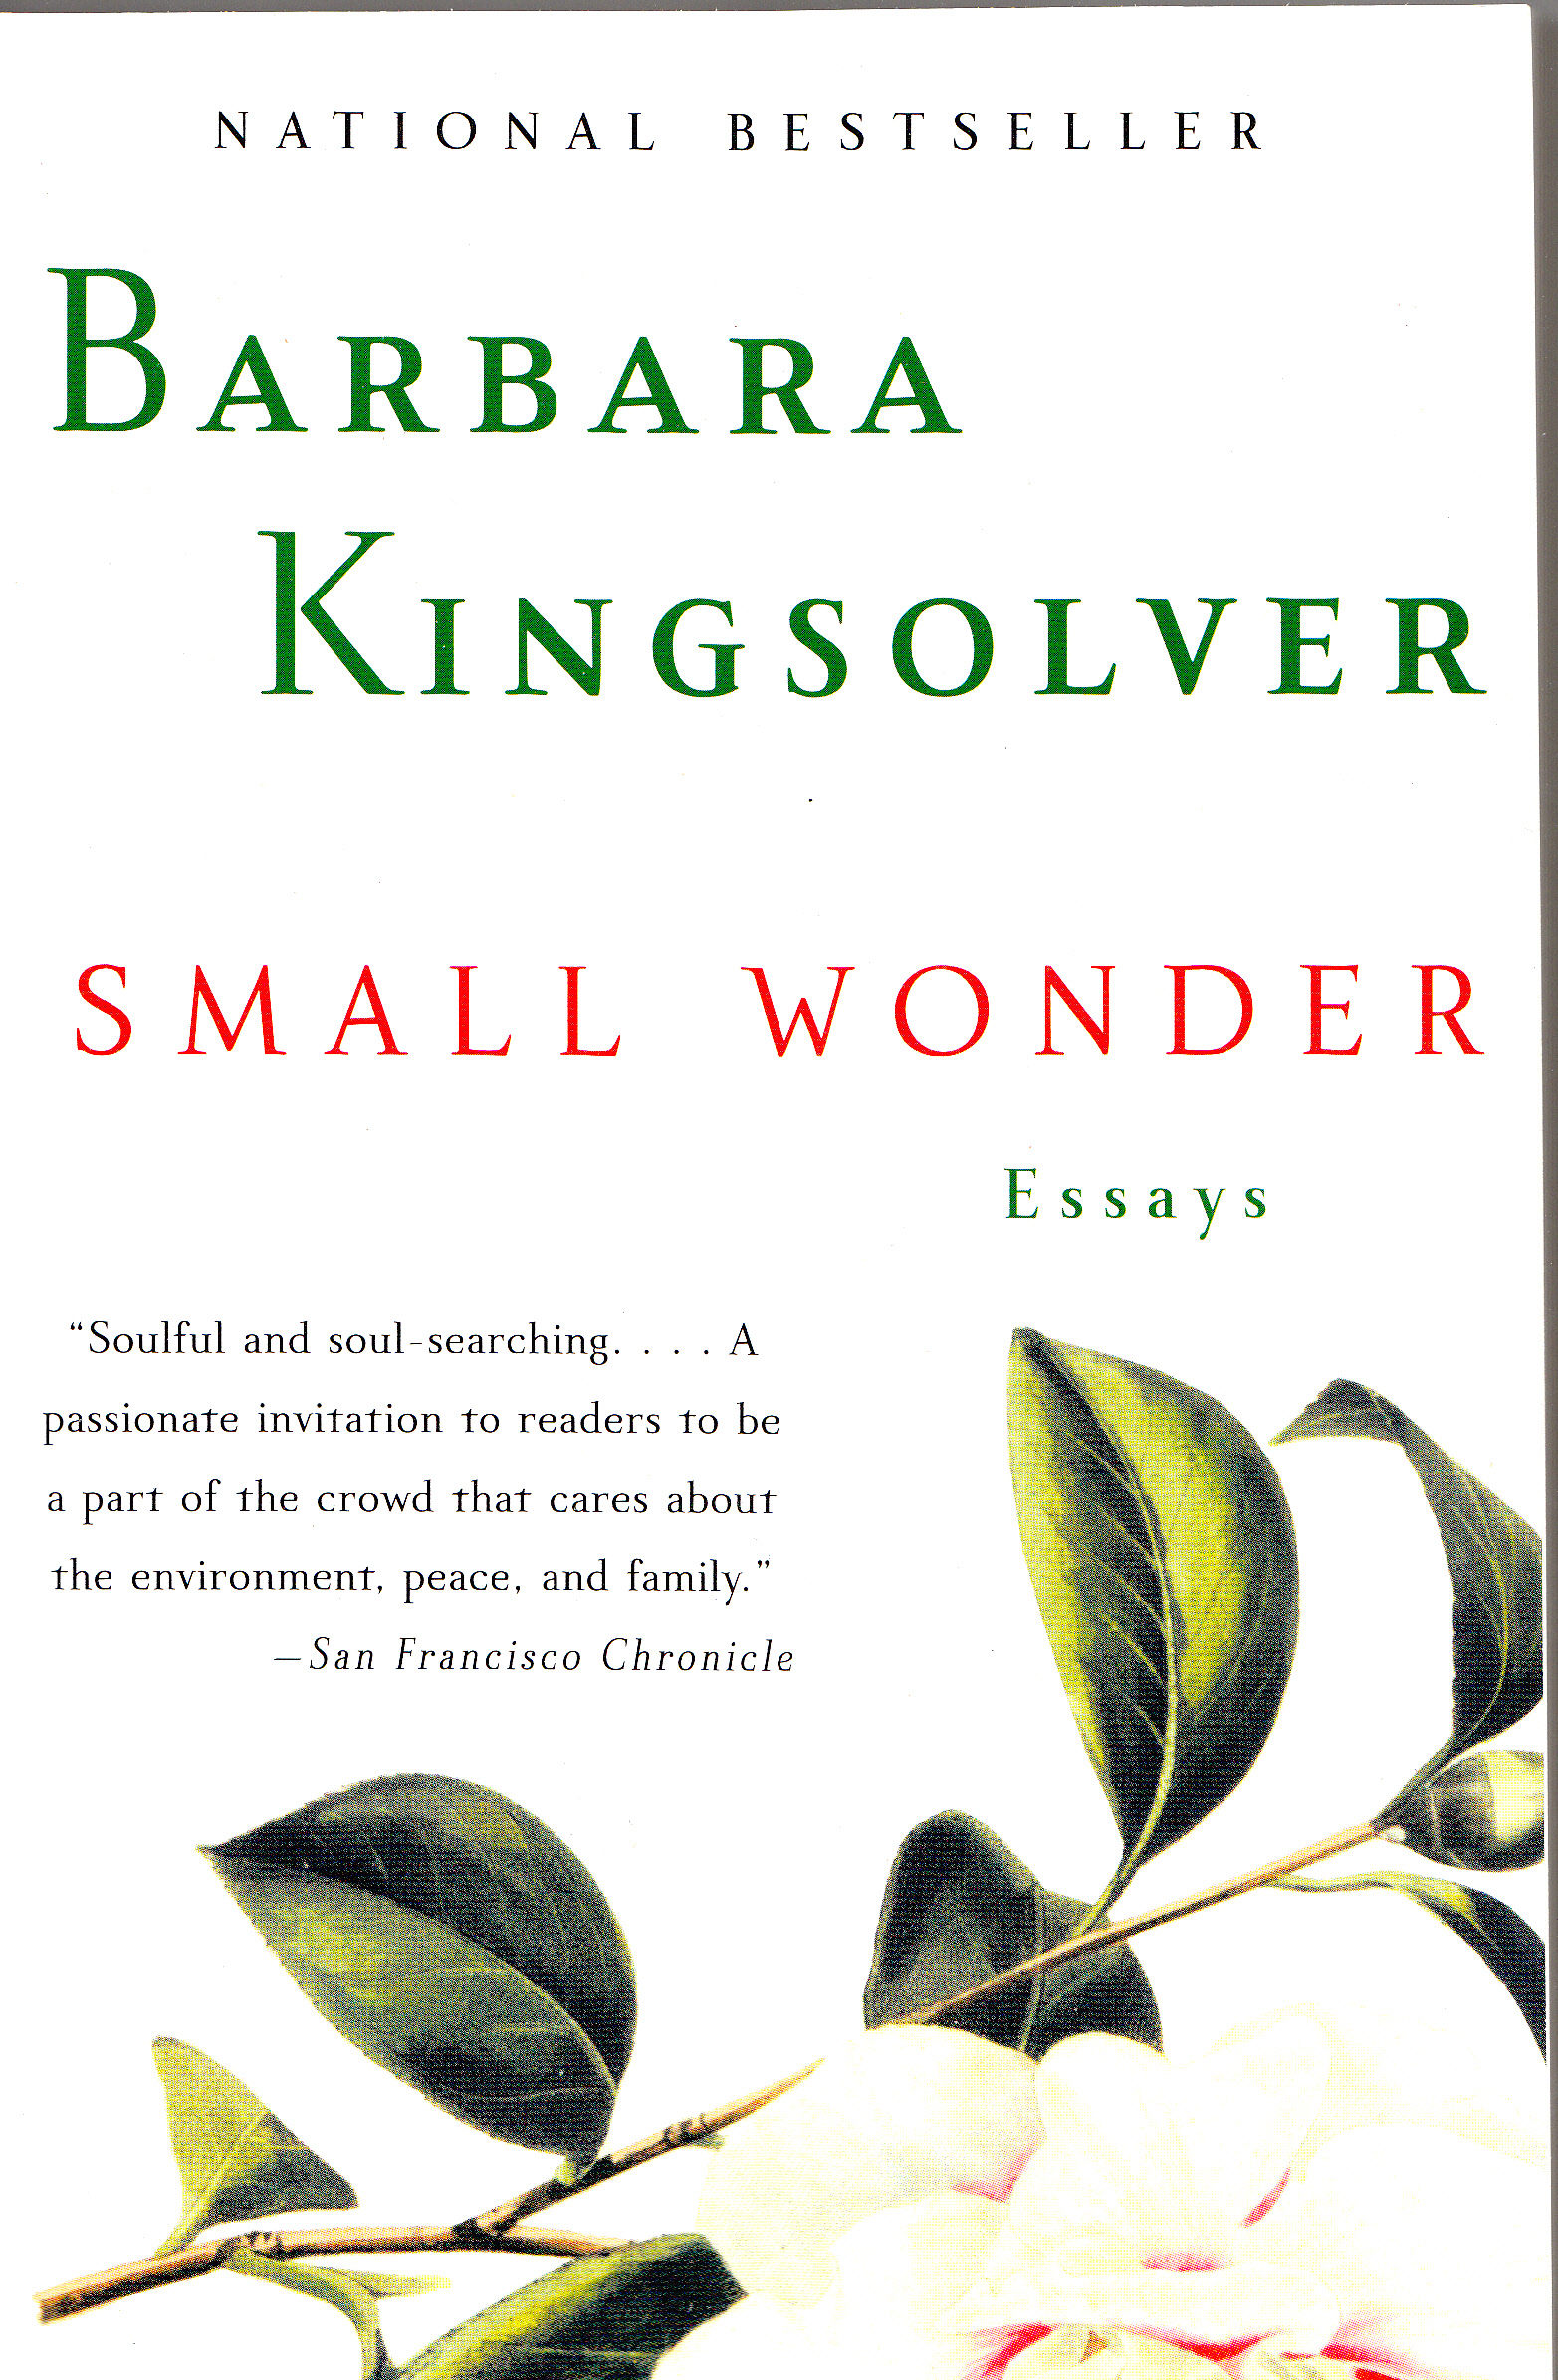 barbara kingsolver her life her work her words learn more small wonder